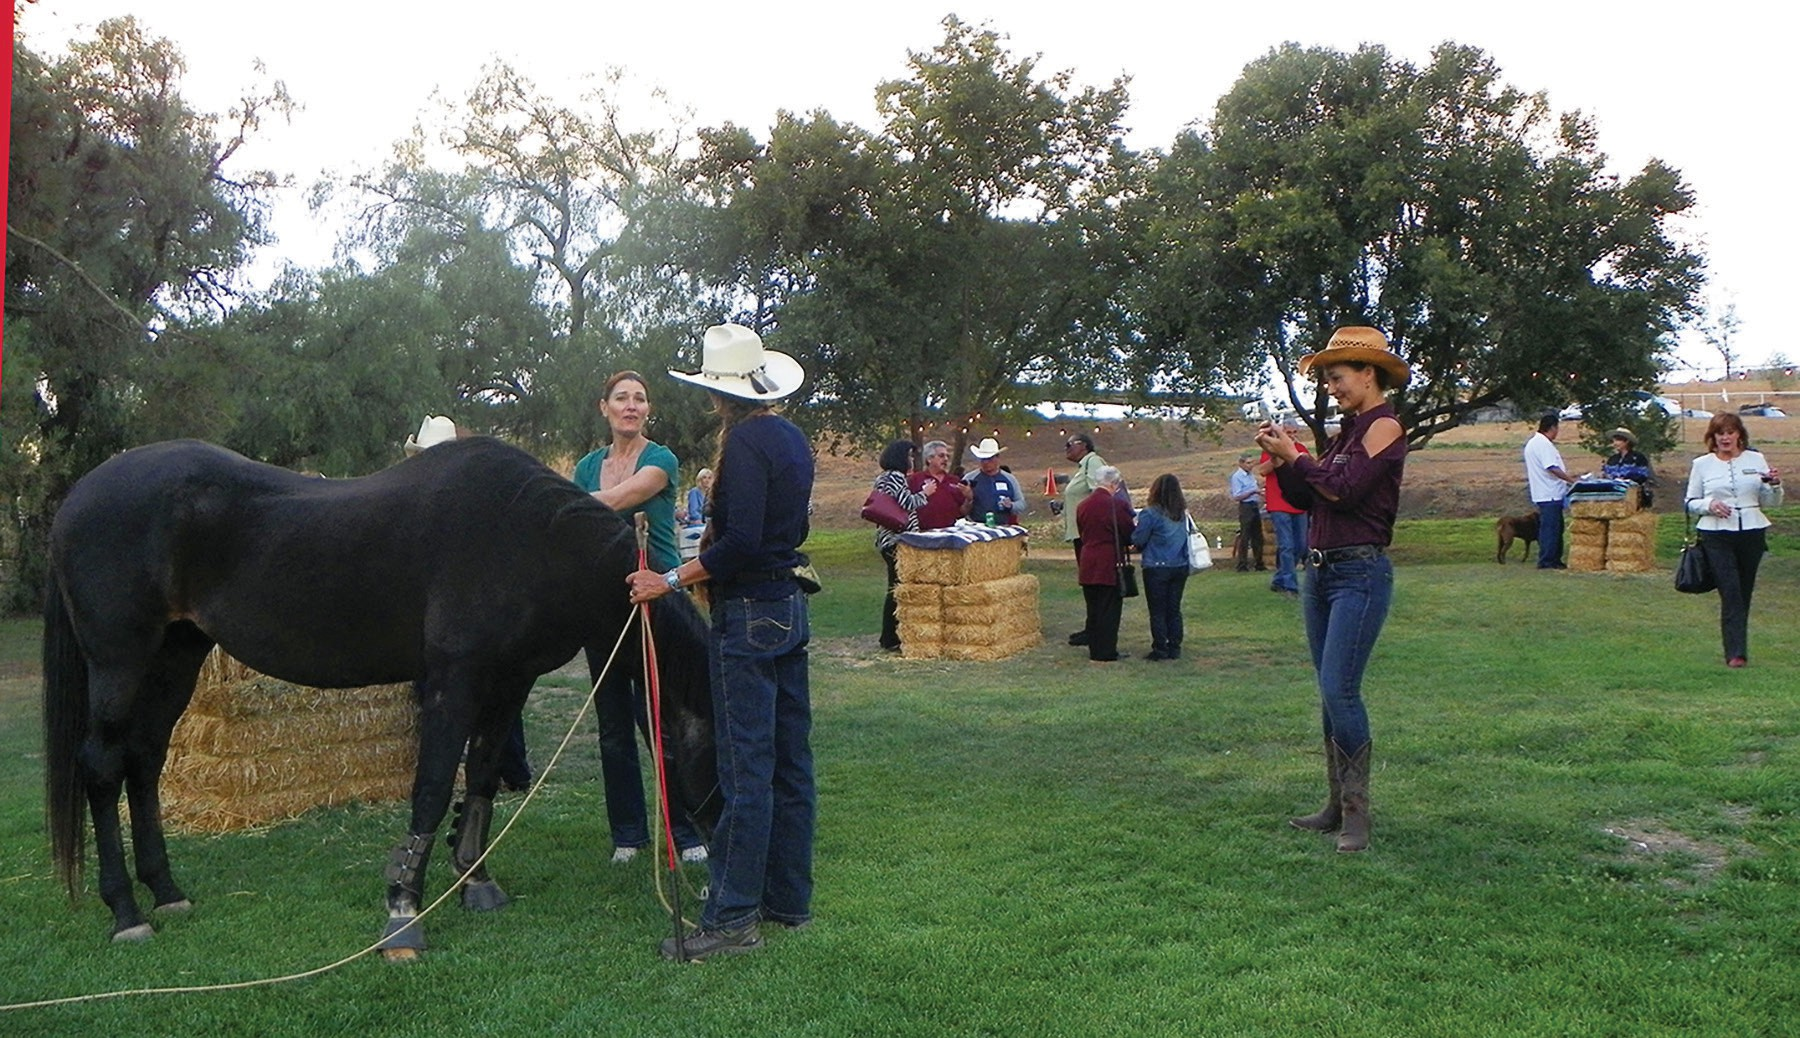 Sue Stiver (center) tells Autumn Dinh (left) of Arthur Murray Dance Studio that Chica (horse) is 32 years old, and the oldest horse on the property.